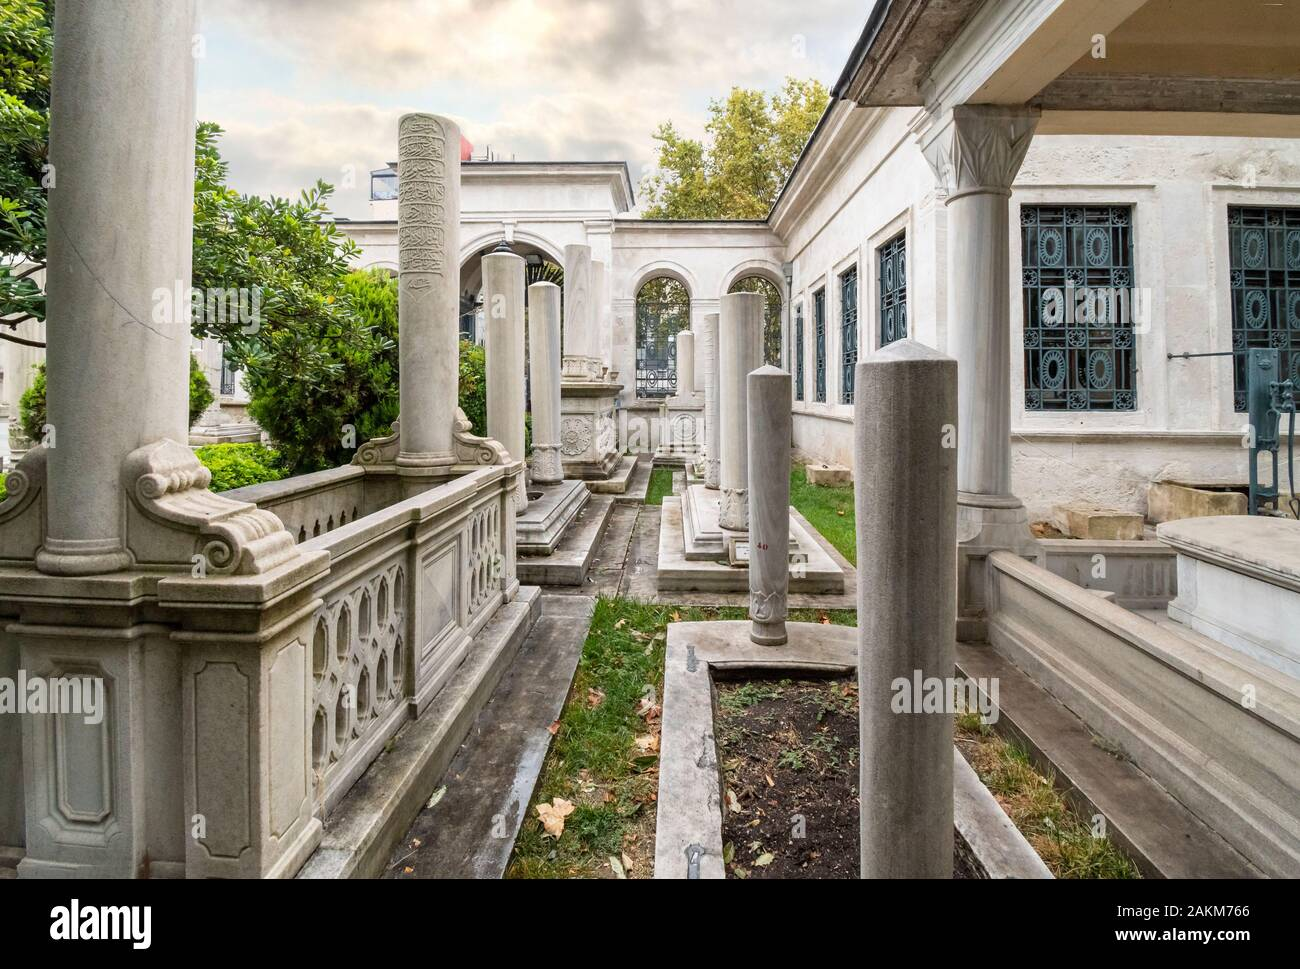 Historic interior courtyard of the Ahmet Tevfik Paşa Tomb filled with marbled headstones, graves and memorials to Turkey's rulers and sultans. Stock Photo